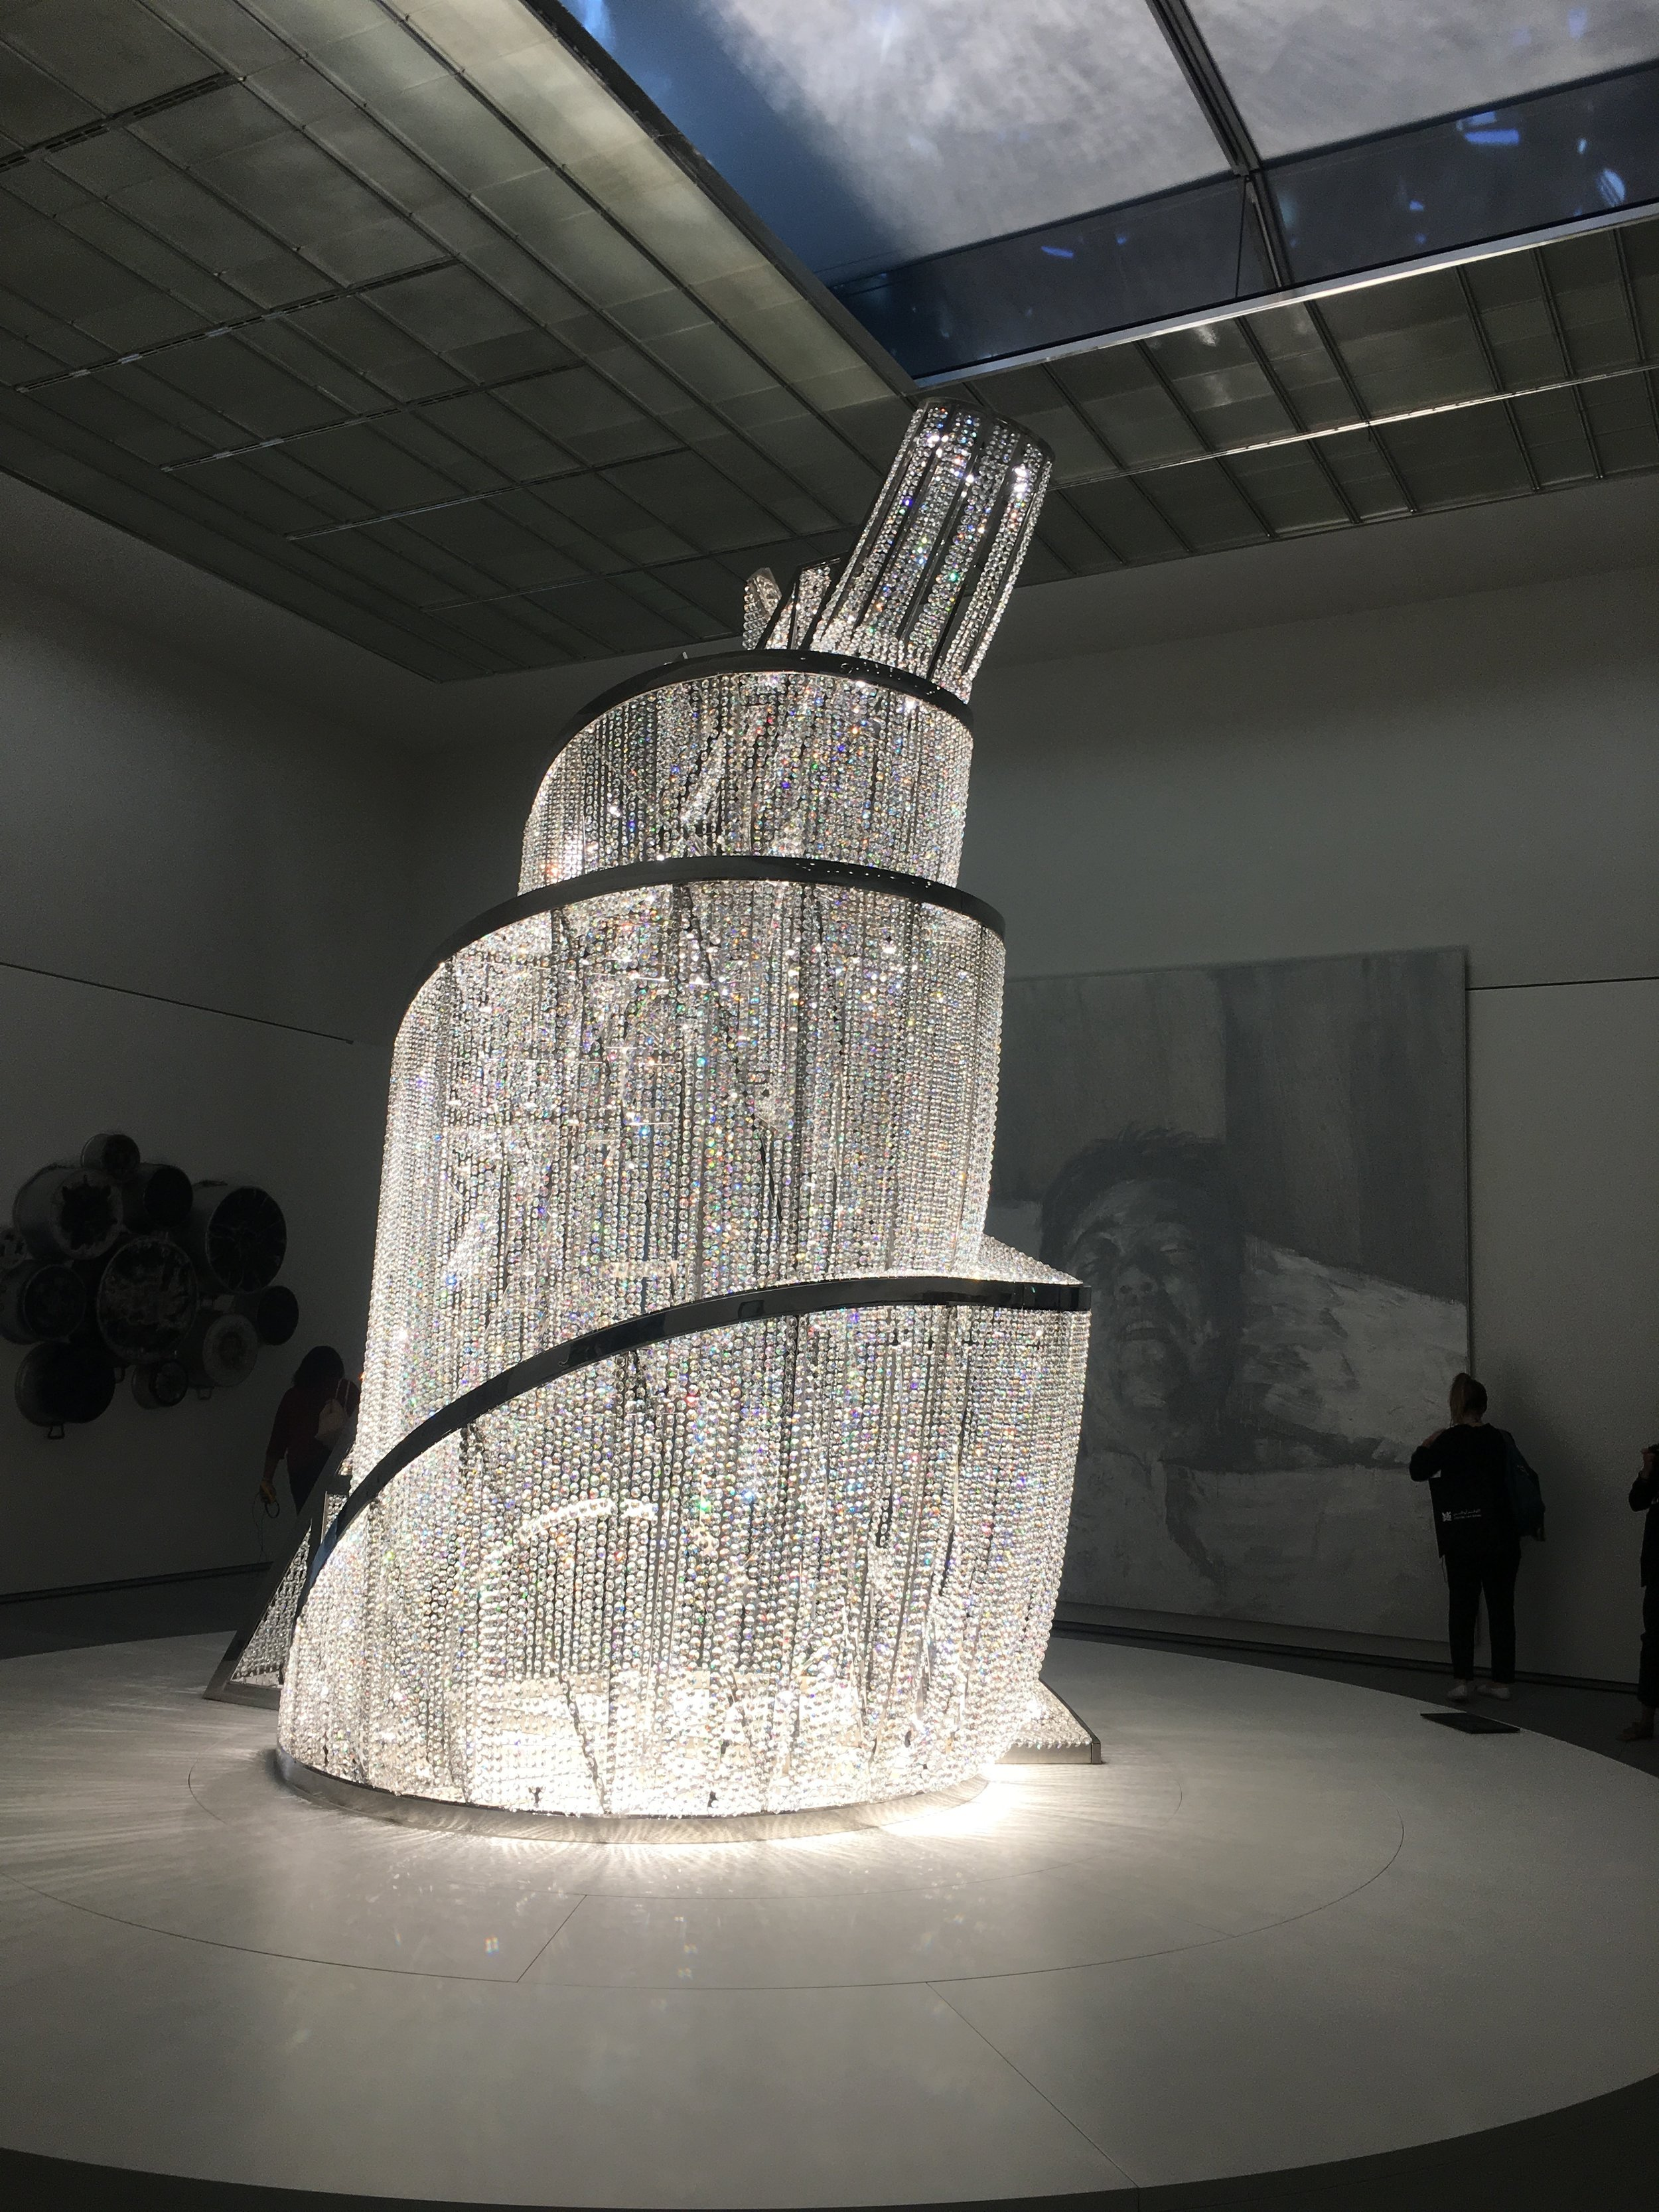 Ai WeiWei. The Fountain of Light (2007) at the centre of the final gallery hall inside the Louvre Abu Dhabi. Image taken by Anna Seaman